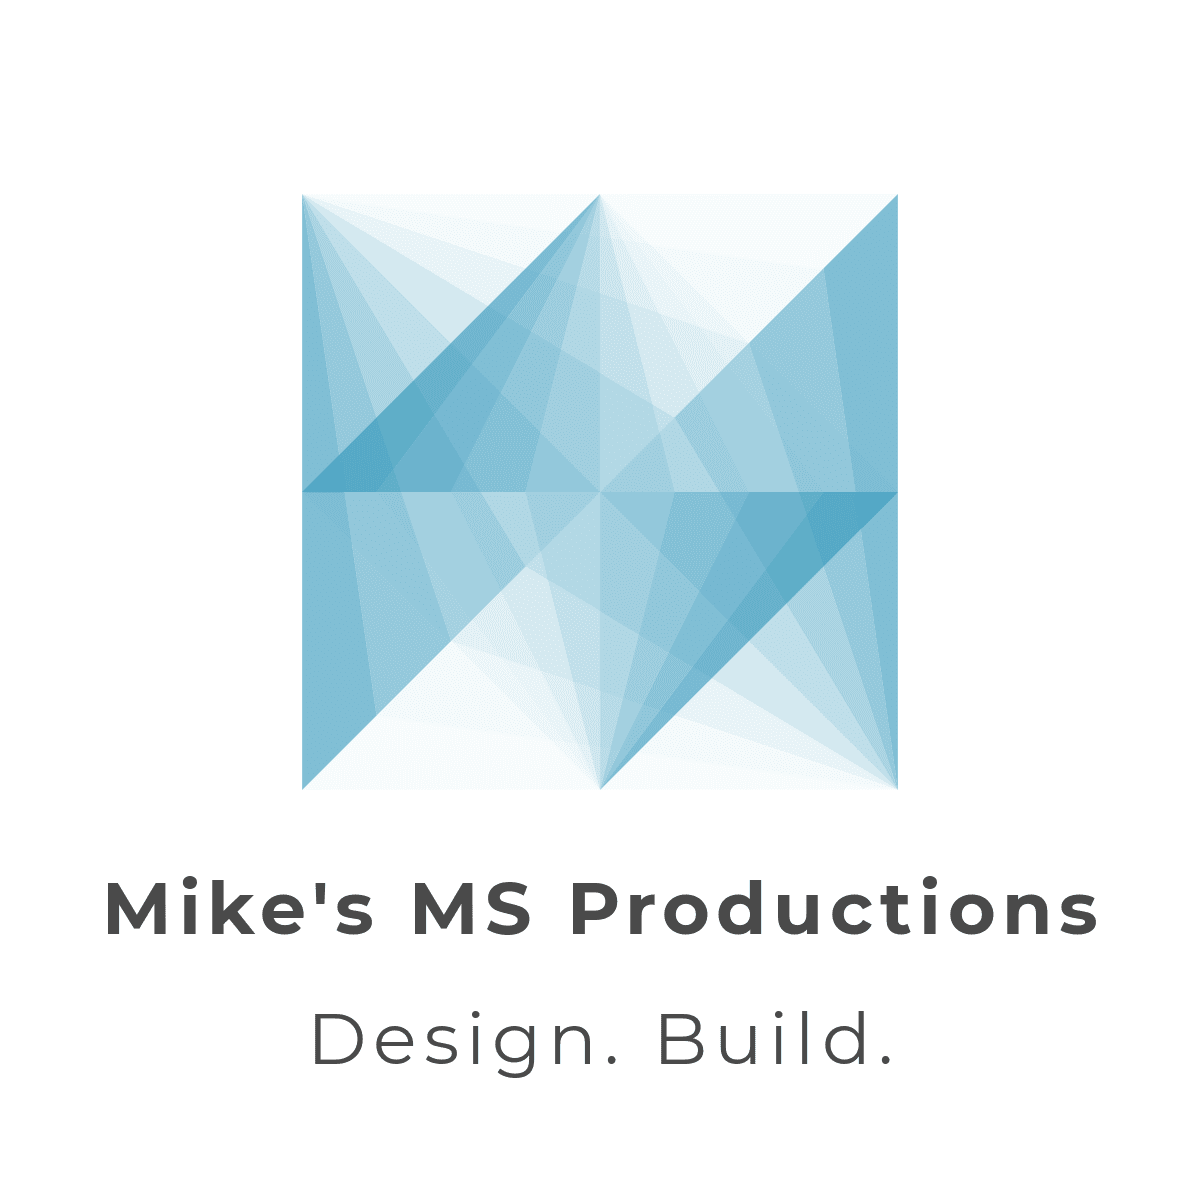 Mike's MS Productions